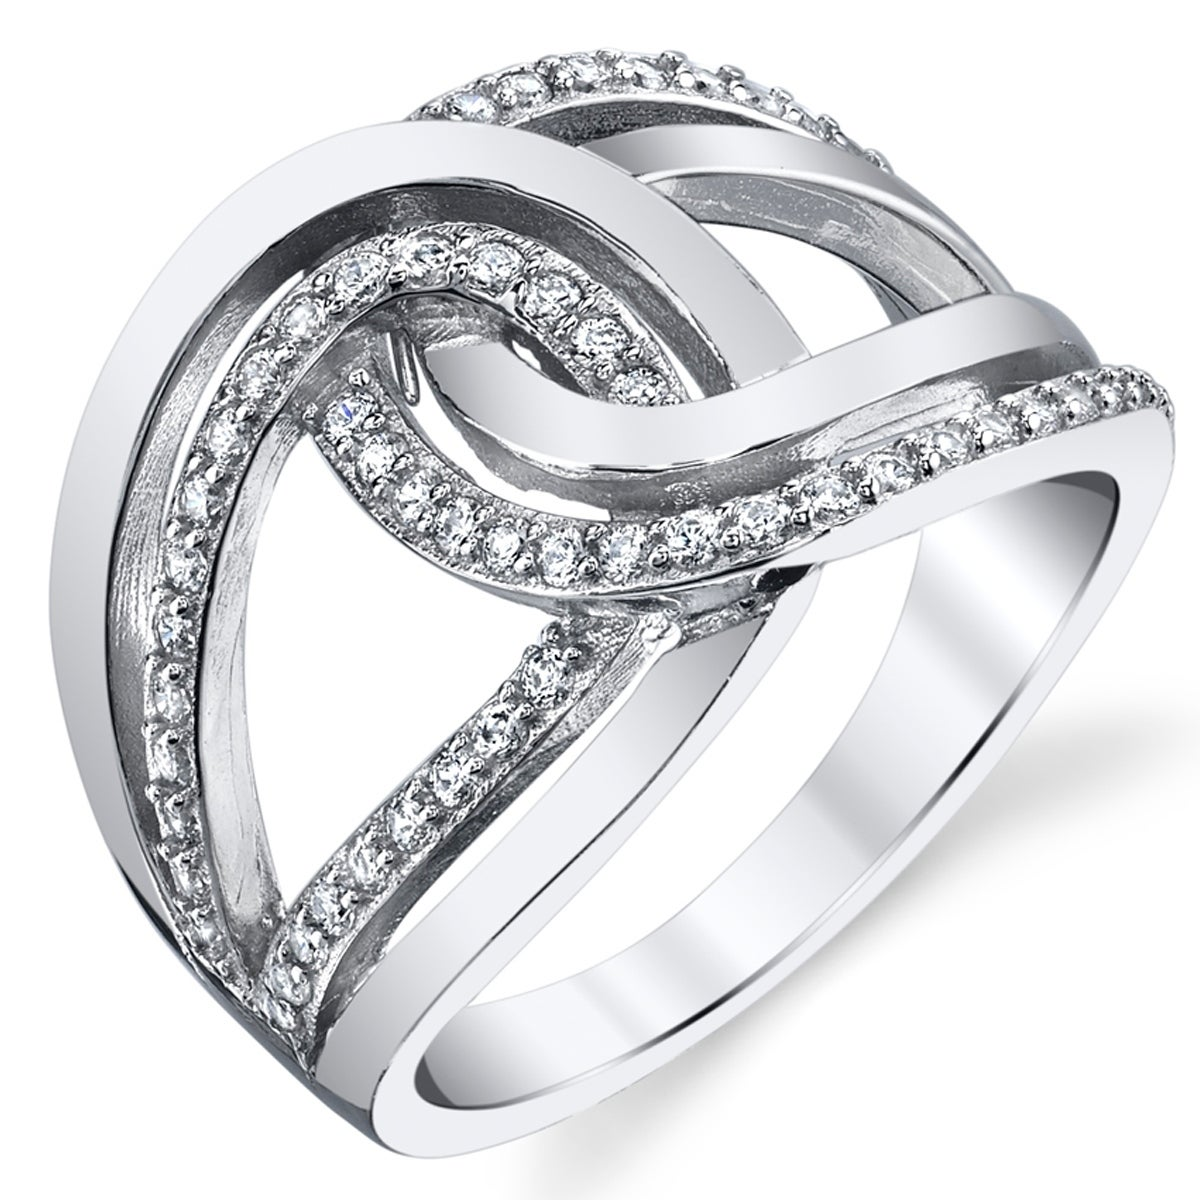 Oliveti Sterling Silver Interlocking Double Love Knot Ring Band With Cubic Zirconia Right Hand Ring Overstock 21135073